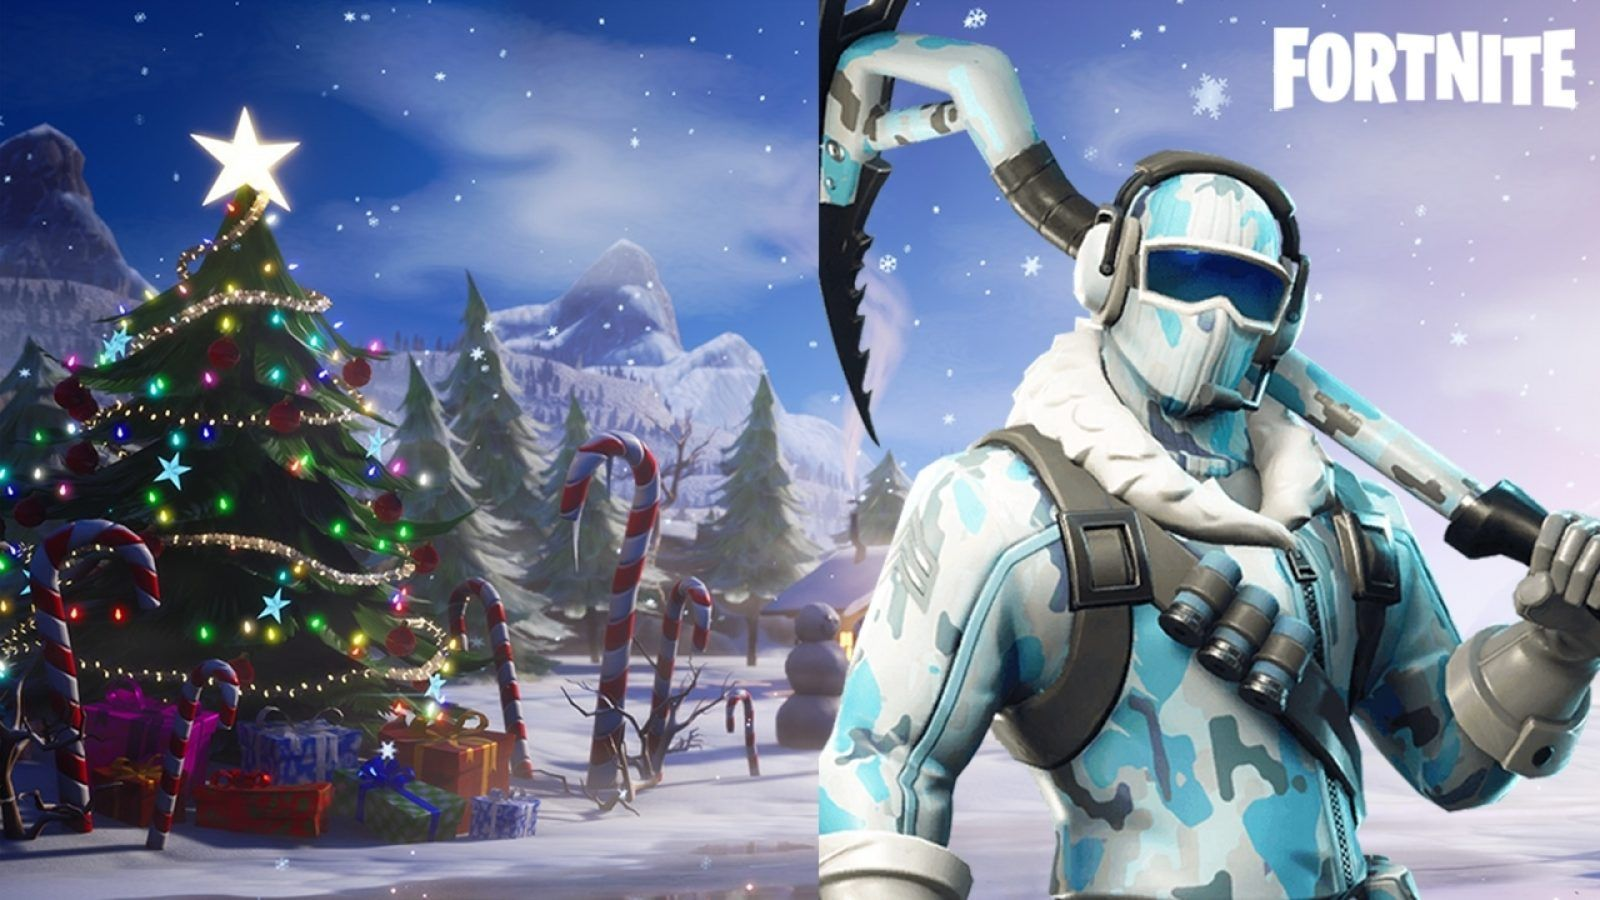 1600x900 Fortnite: Multiple v6.31 leaks appear to confirm a snow theme for ...